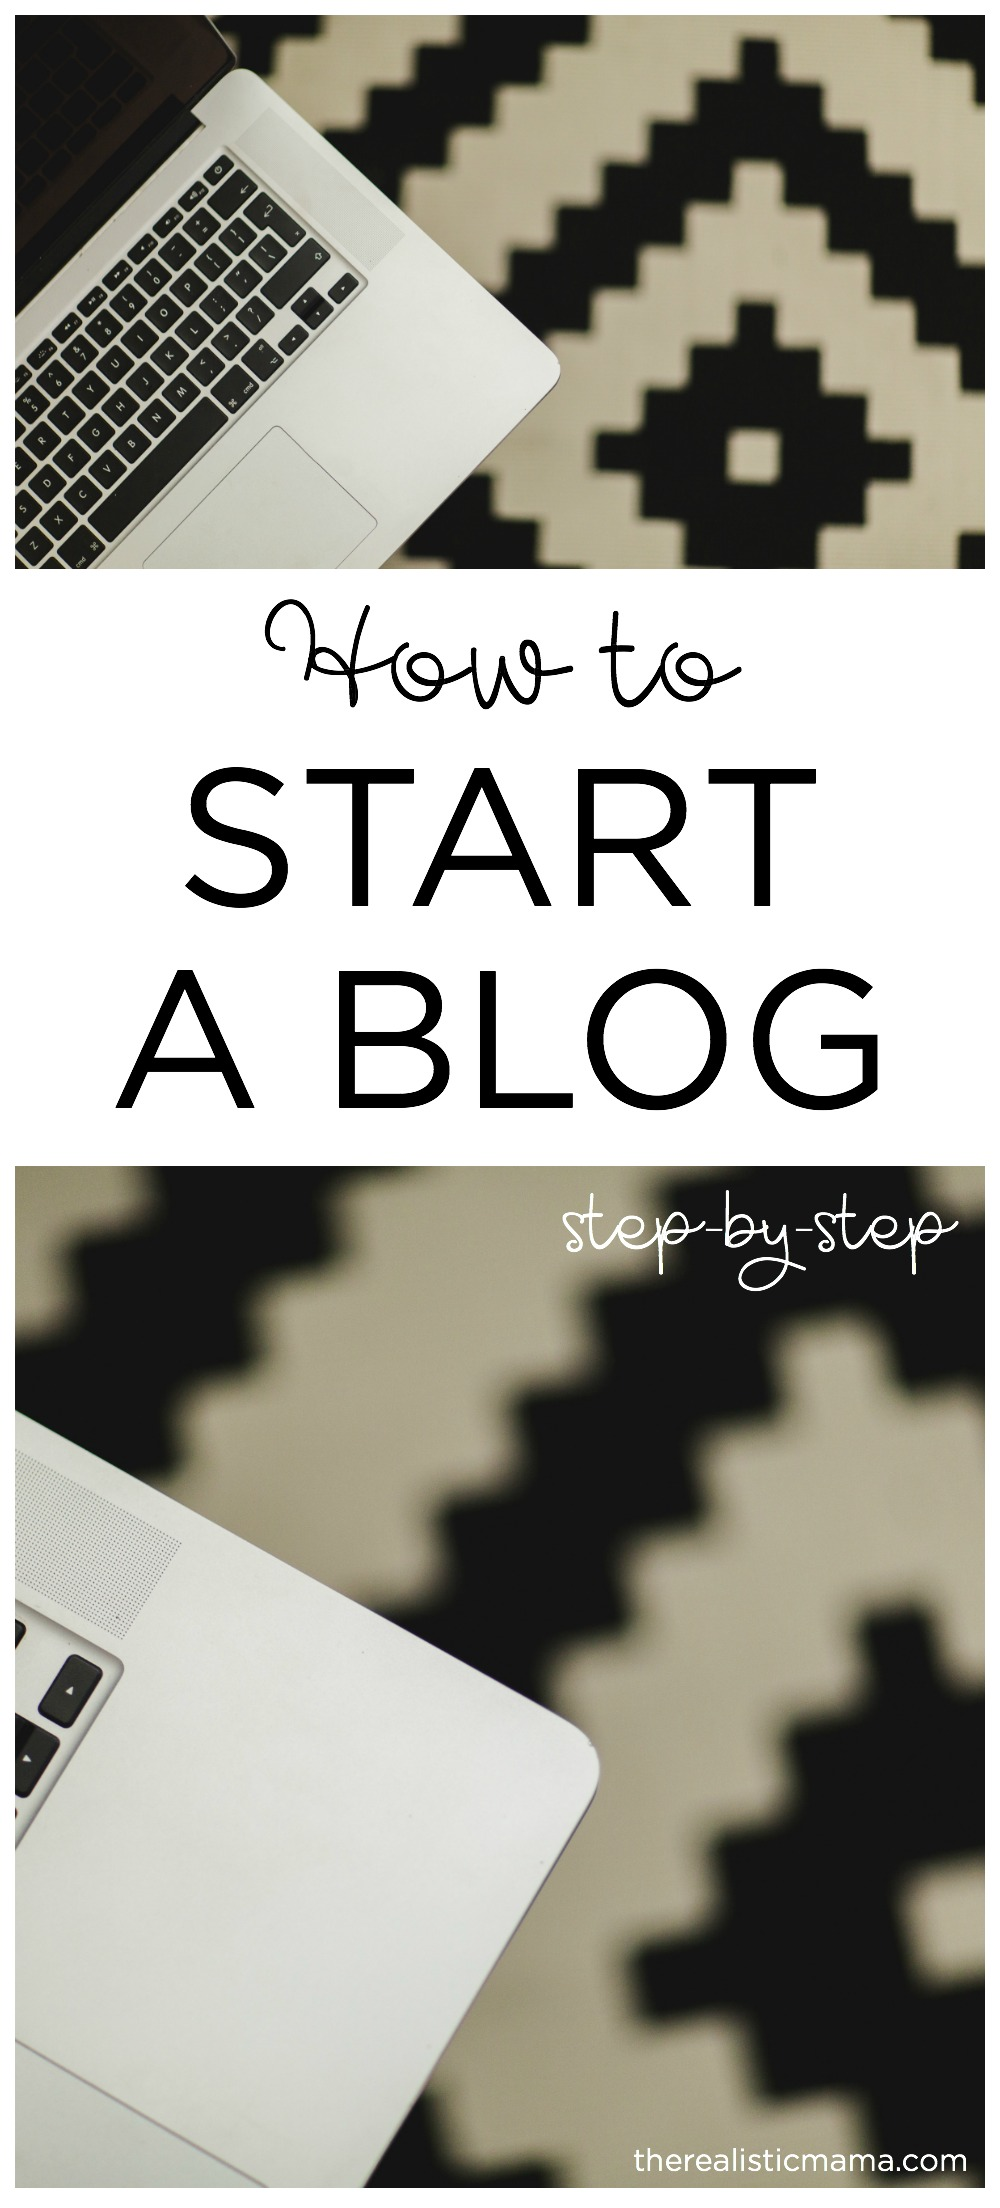 How to Start a Blog Step-by-Step